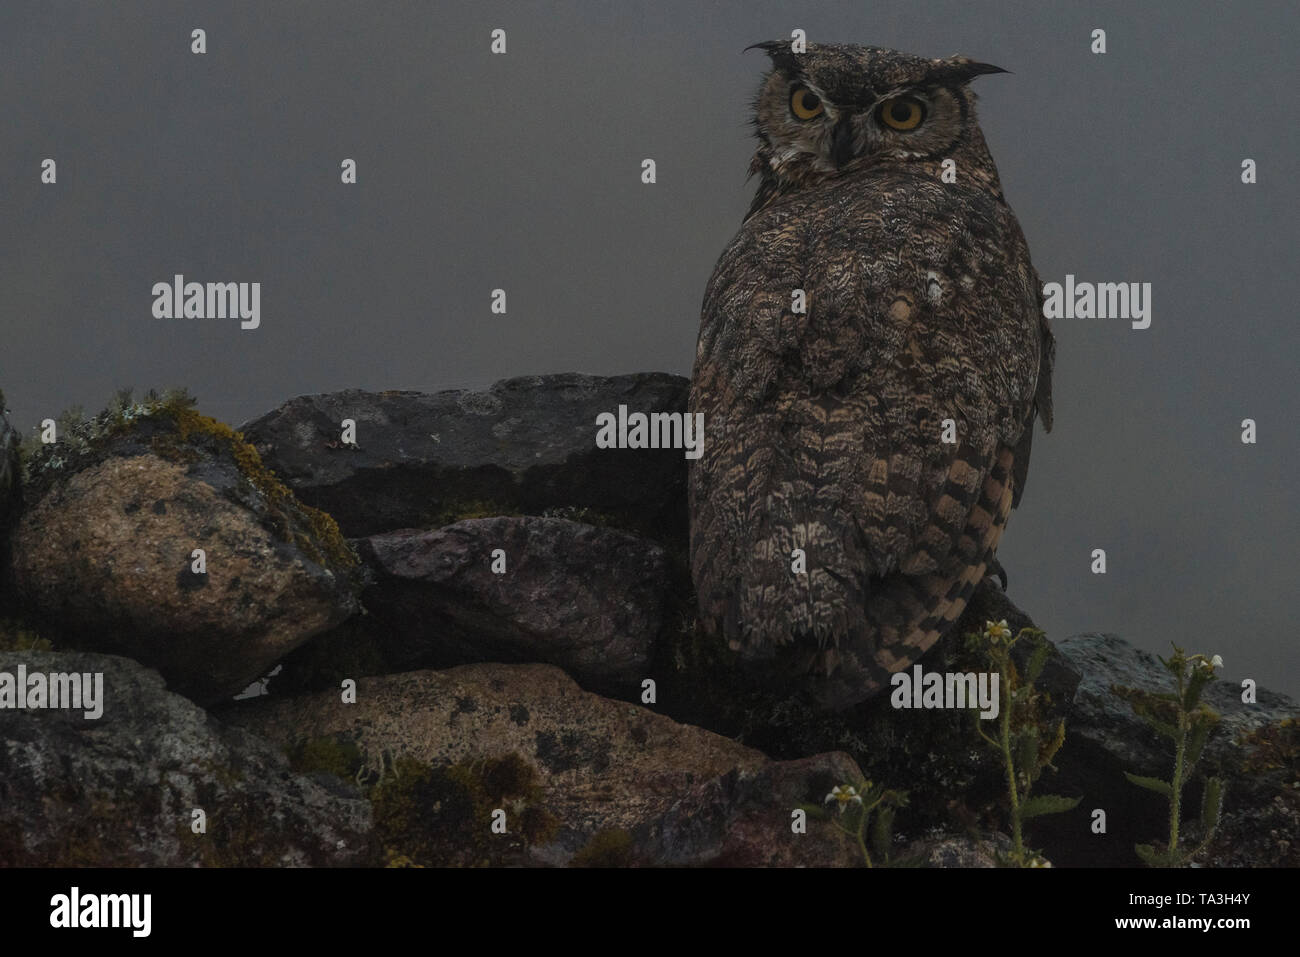 The lesser or Magellanic horned owl (Bubo magellanicus) which is sometimes regarded as a subspecies of great horned owl from the Peruvian Andes. - Stock Image